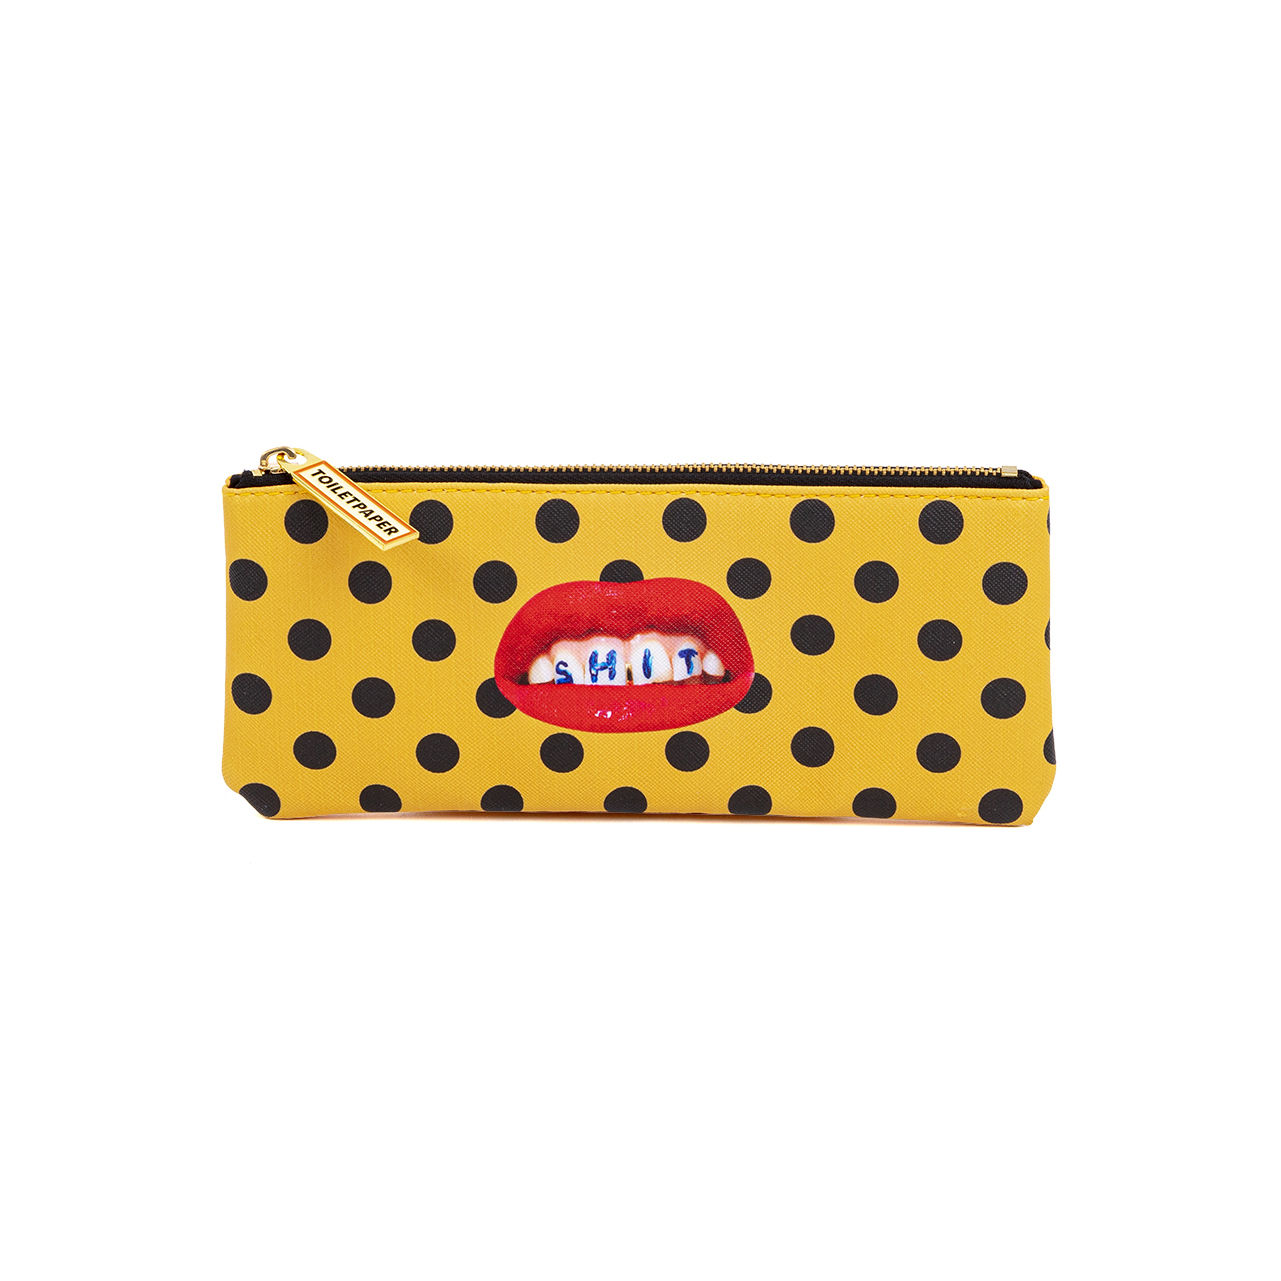 Accessories - Bags, Purses & Luggage - Toiletpaper Case - / Shit - Fabric by Seletti - Shit - Polyester, Polyurethane